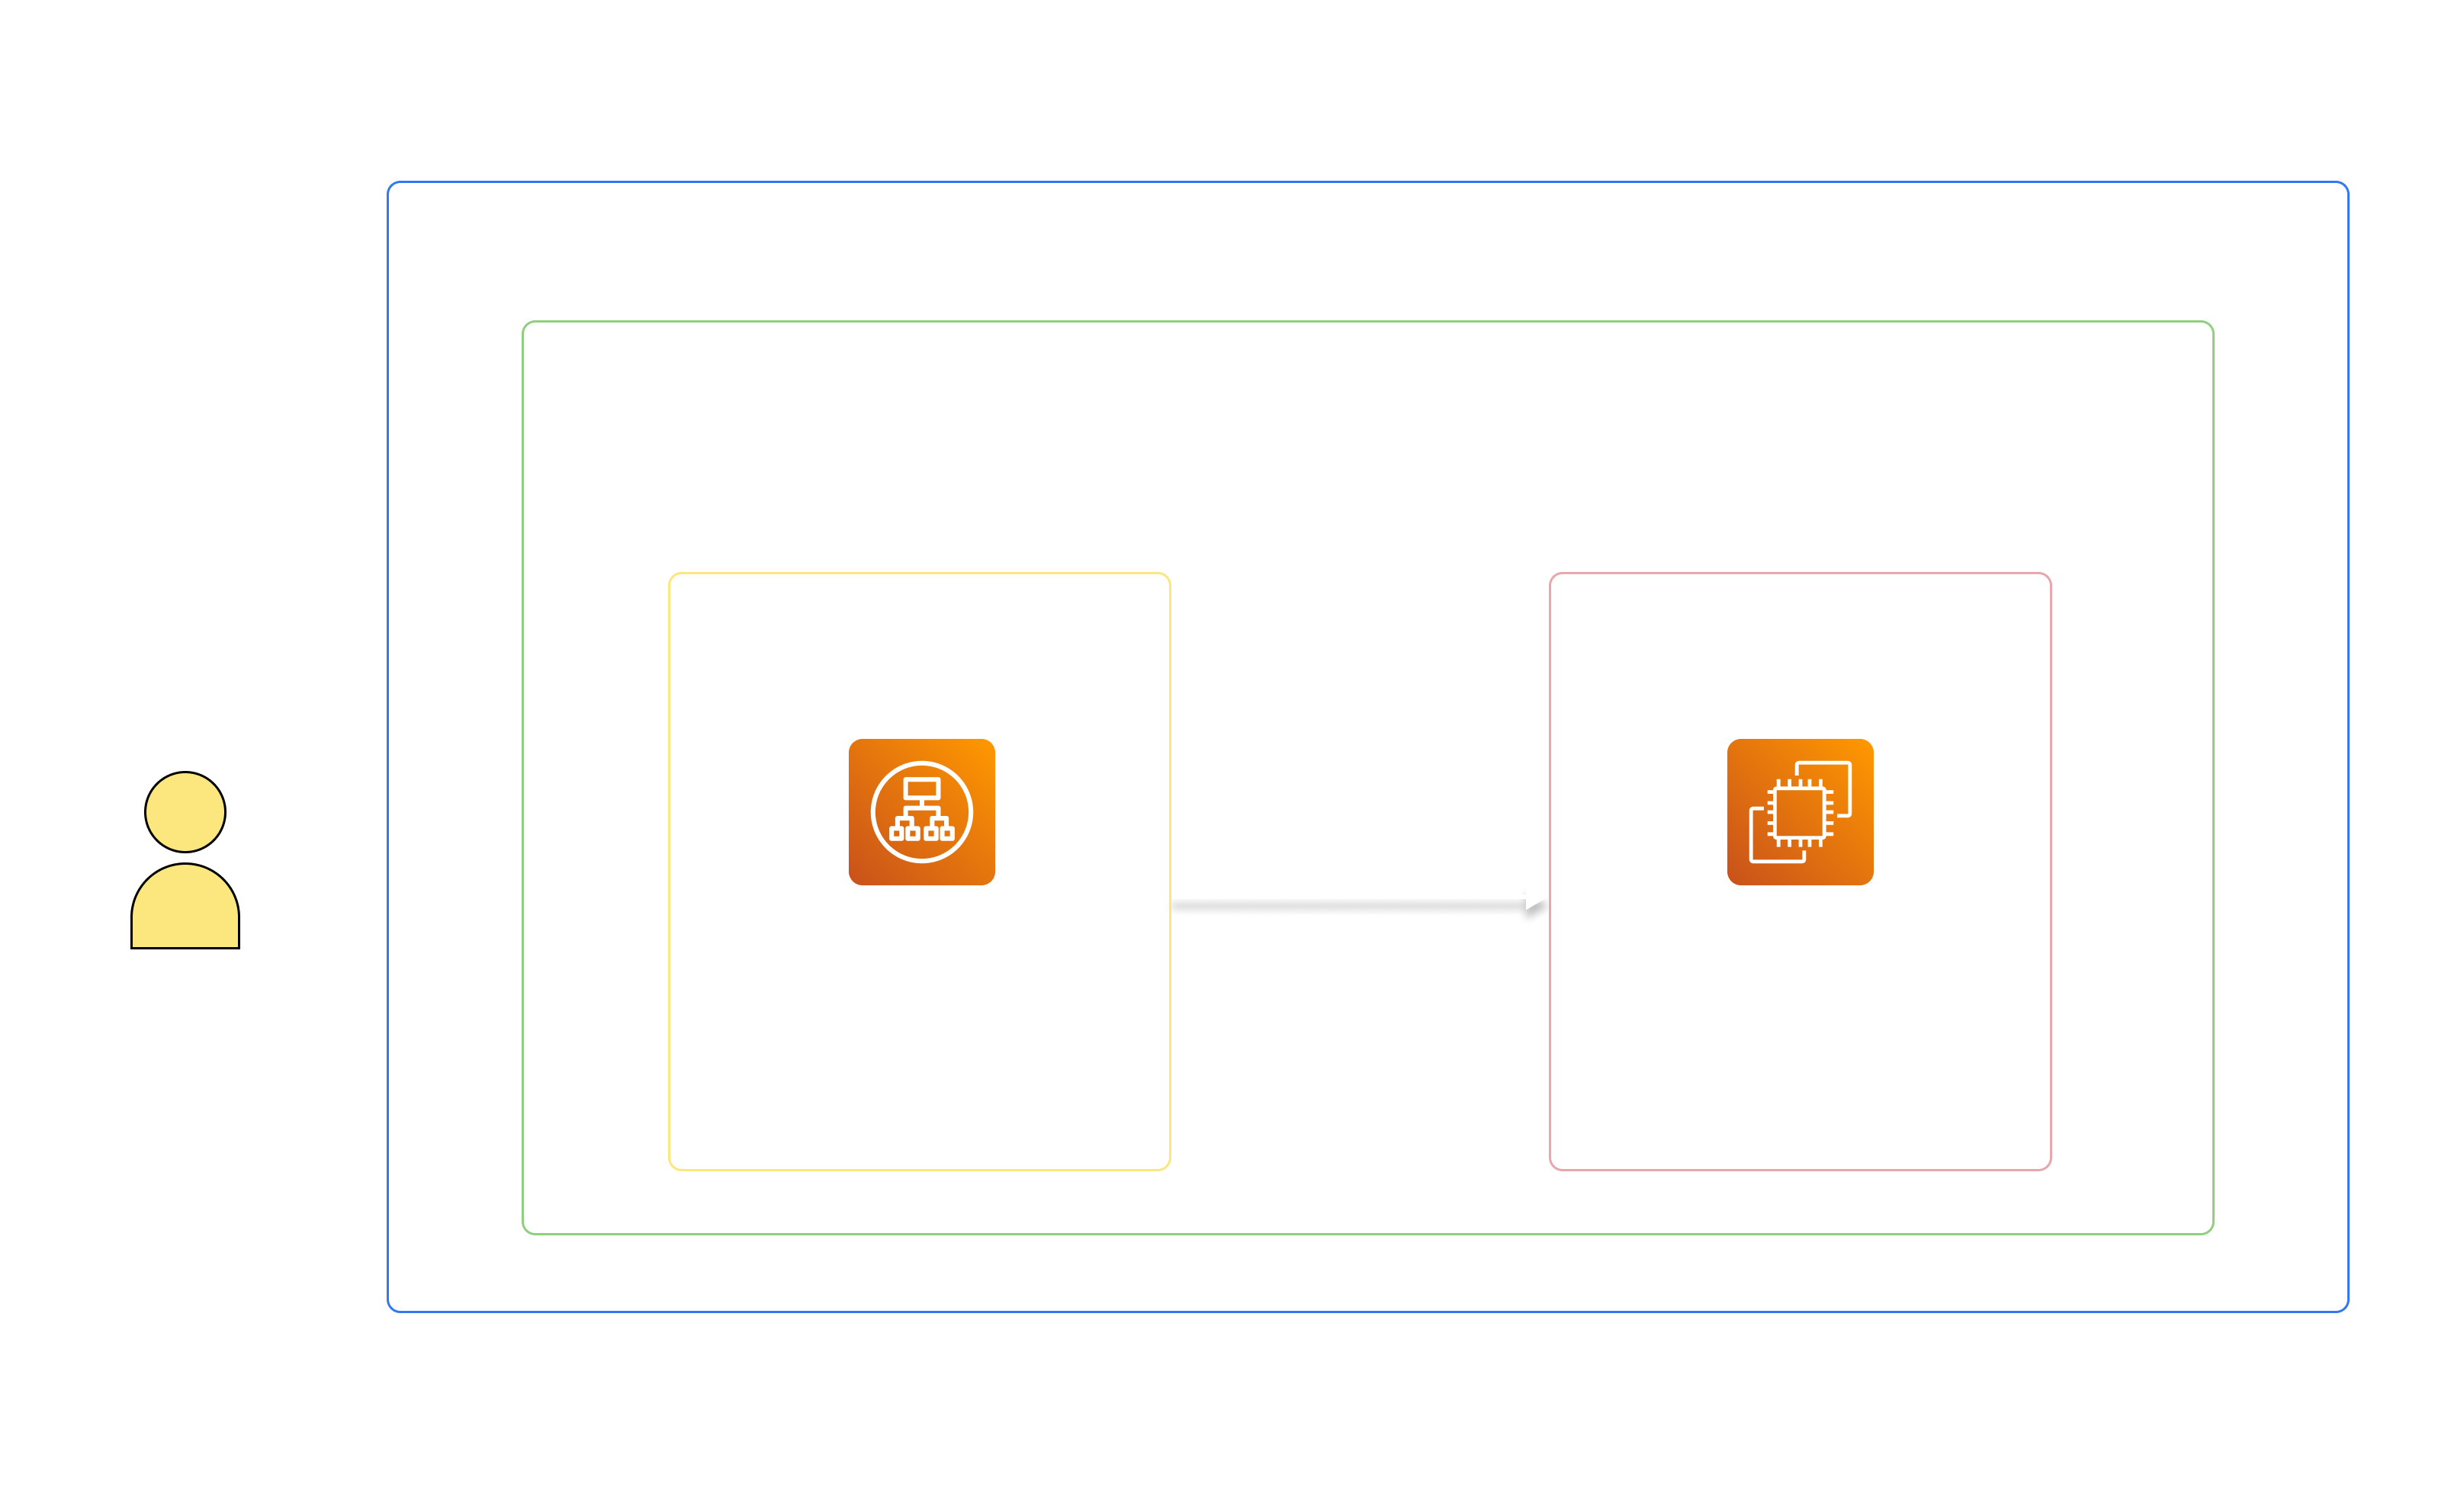 A diagram of an AWS VPC network architecture